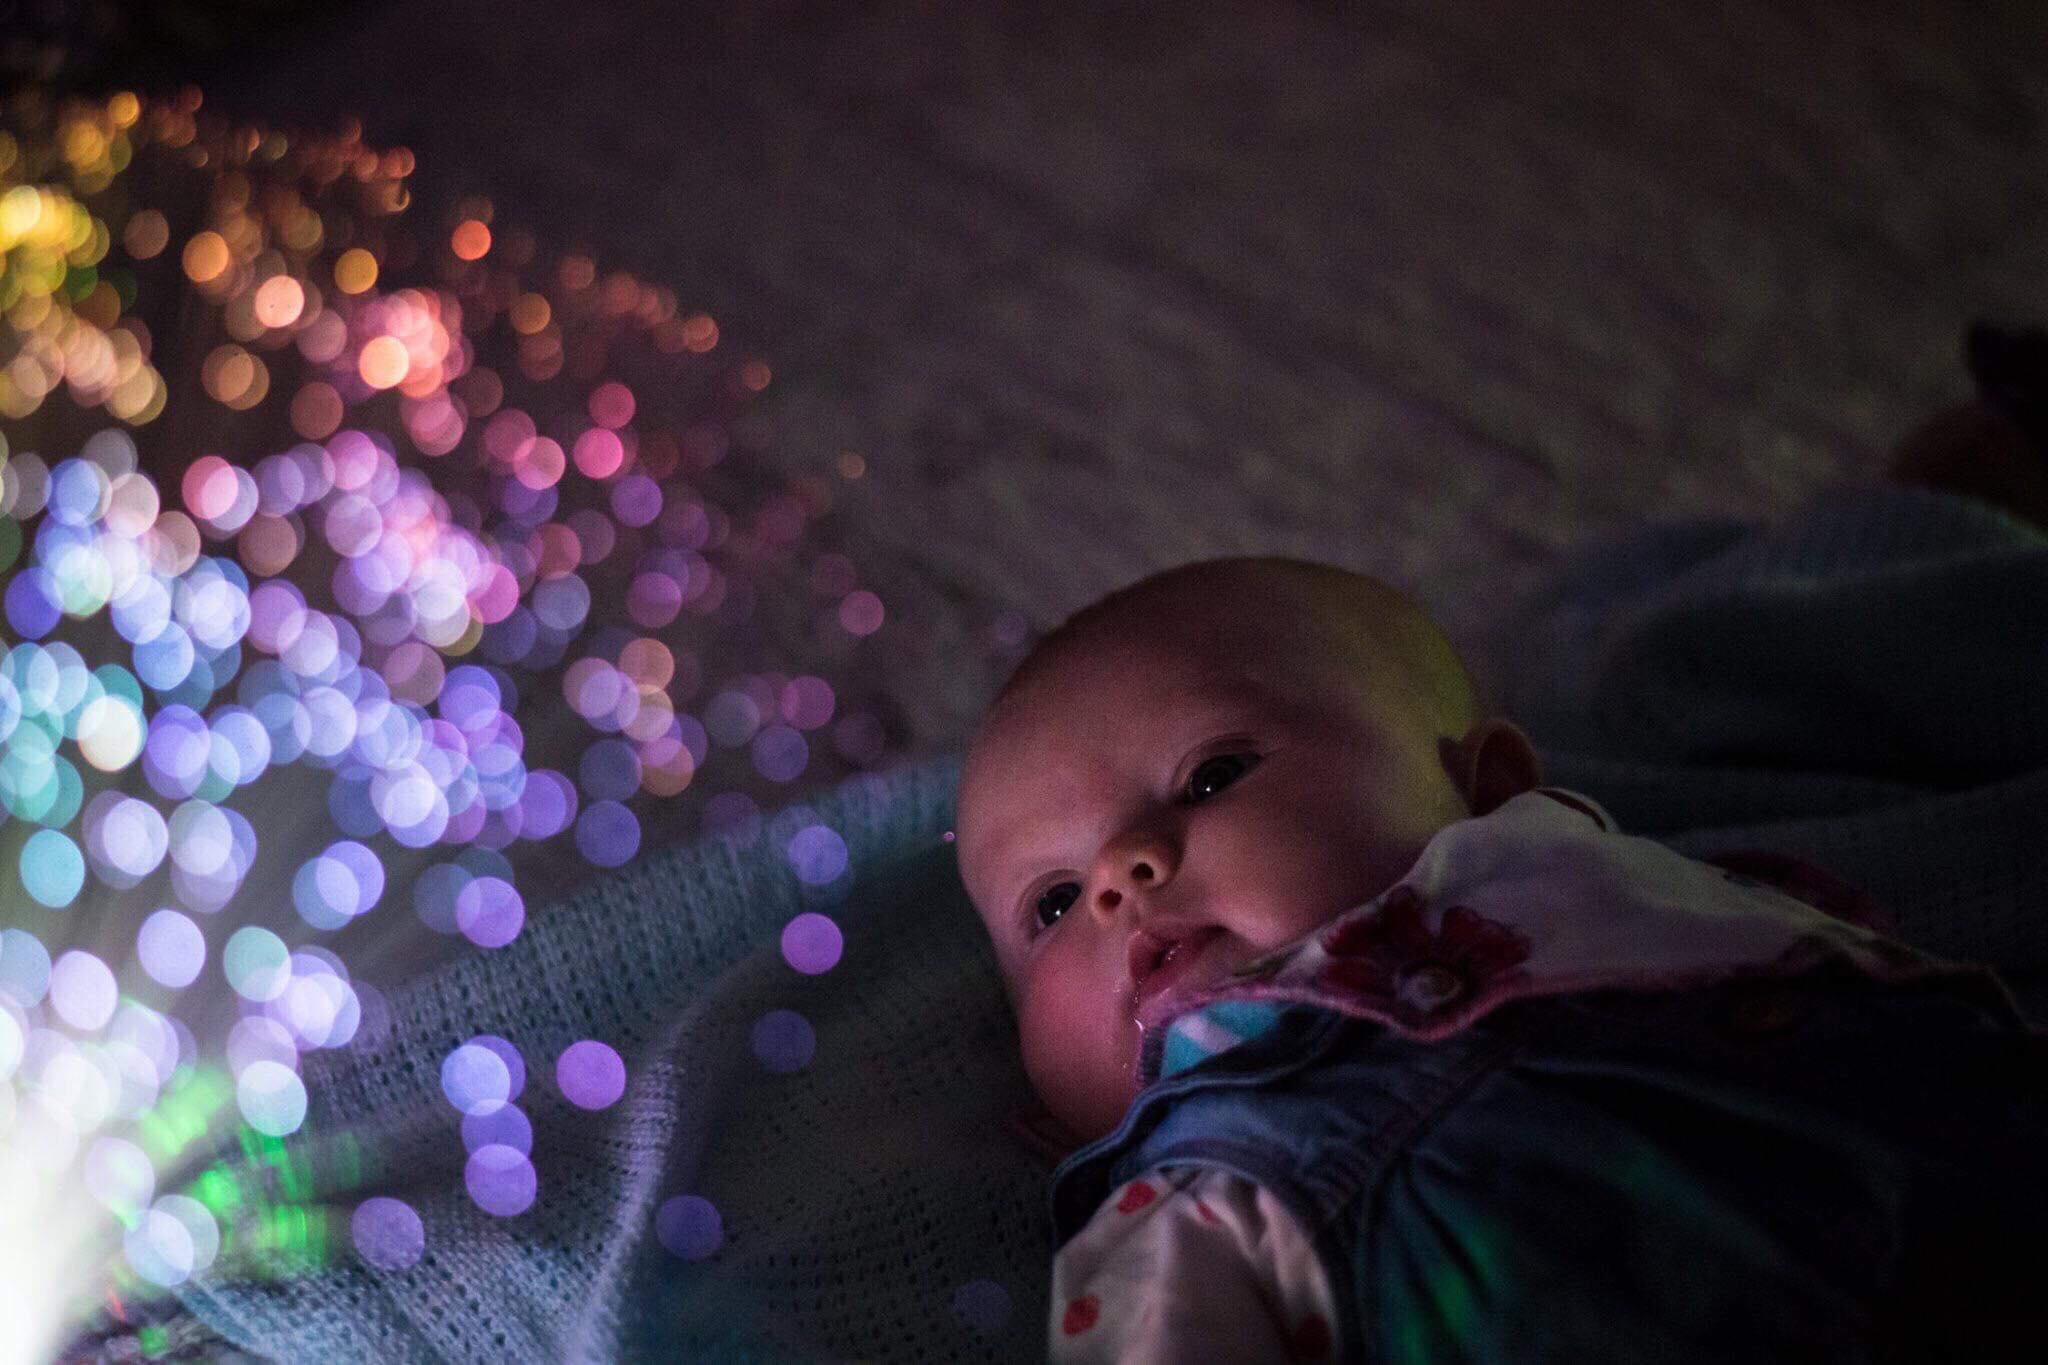 A small infant studies the colourful lights at Little Glow in Ravenshead.